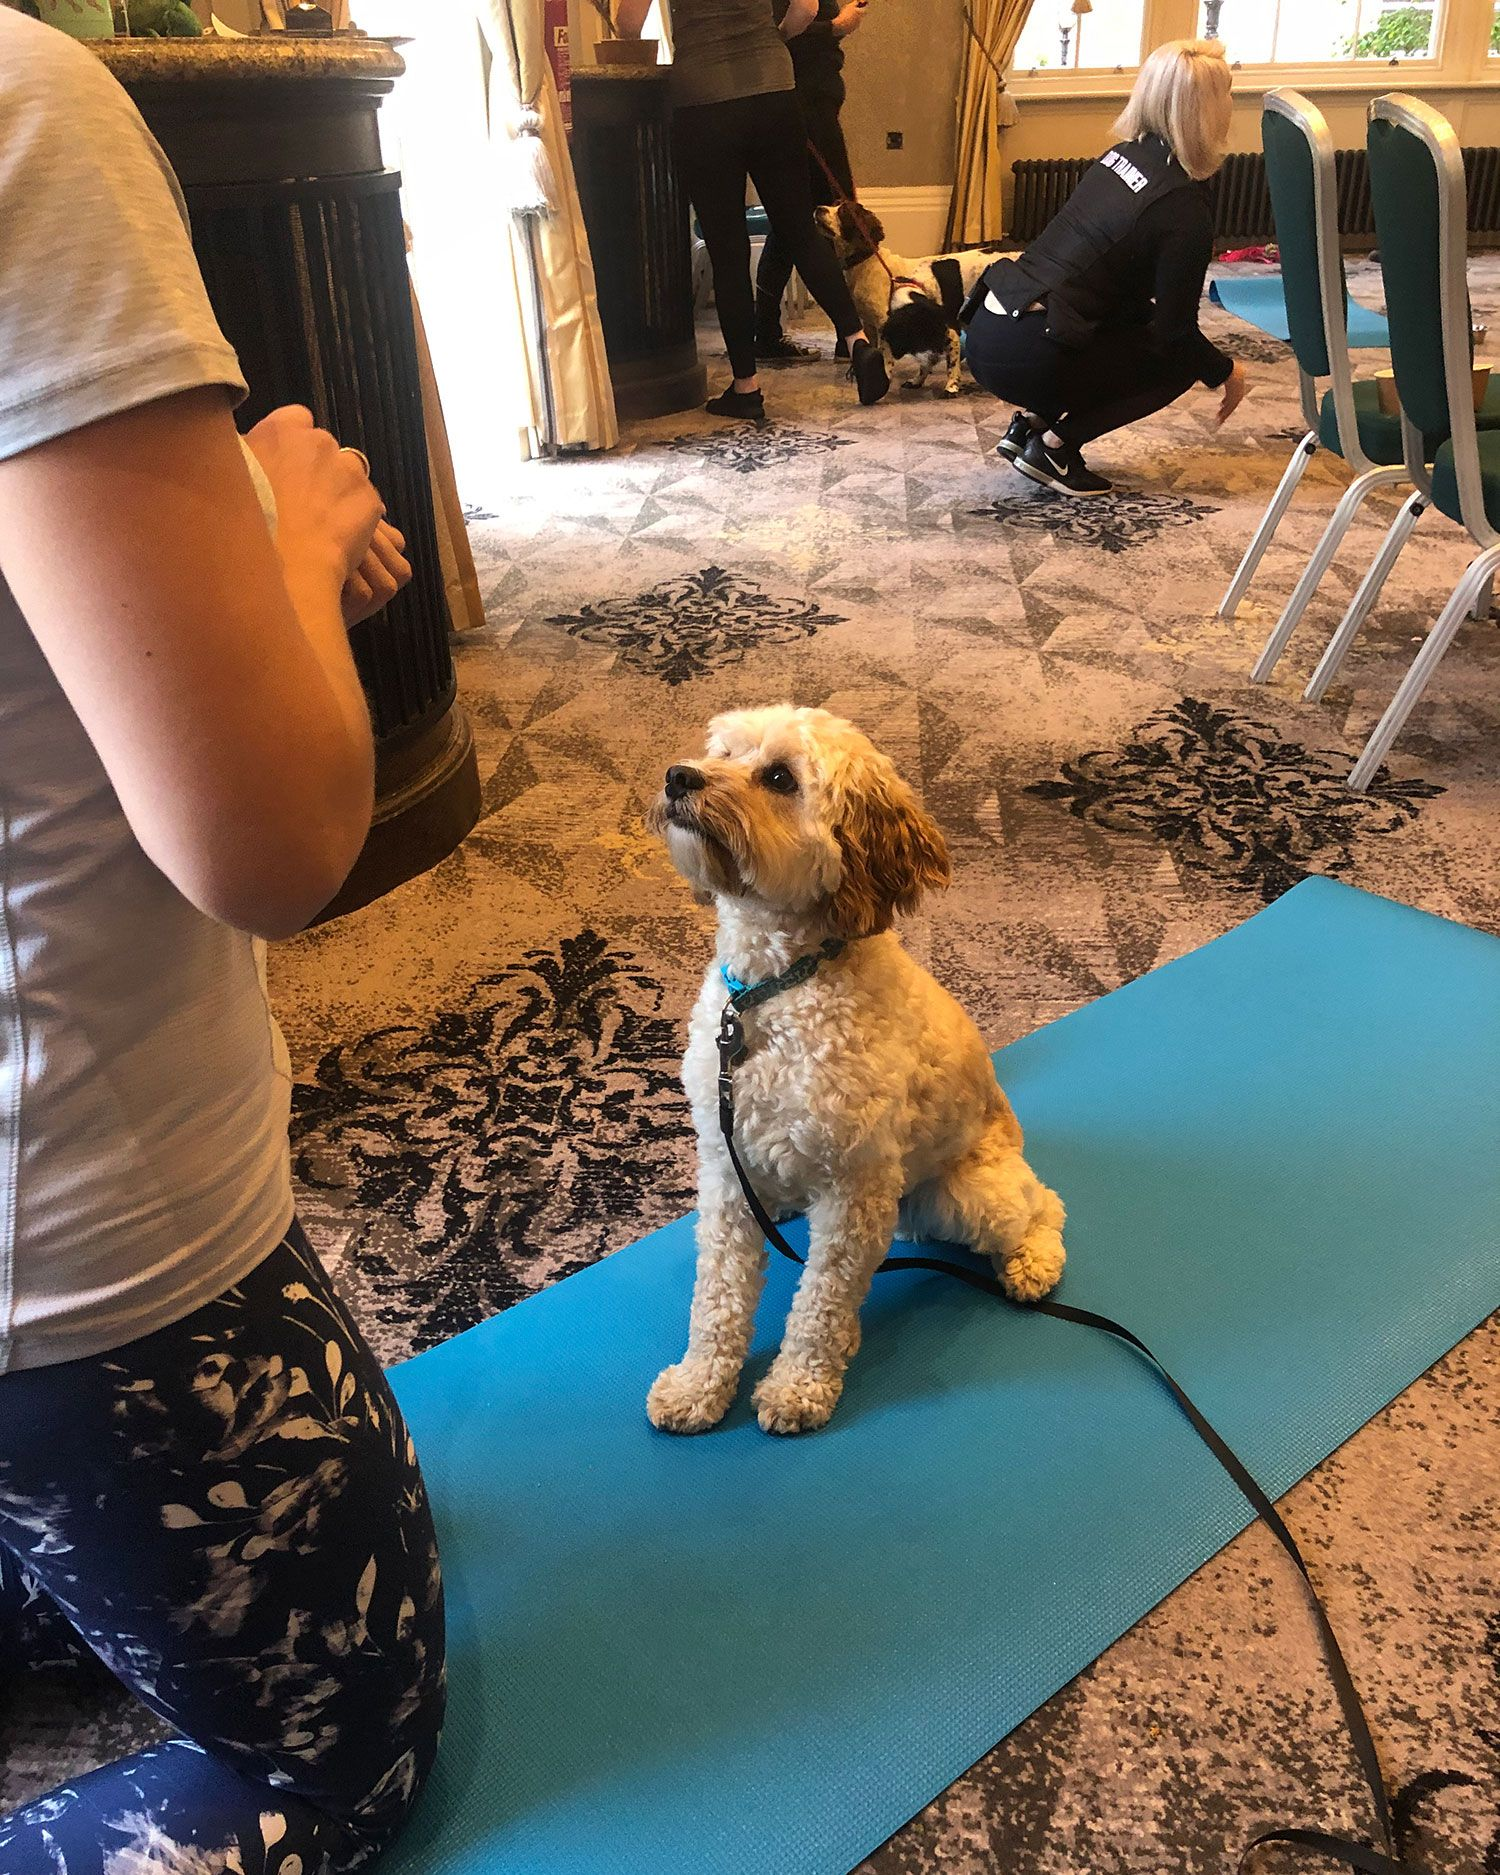 What is dog yoga? We went to a dog yoga class to see what it's all about